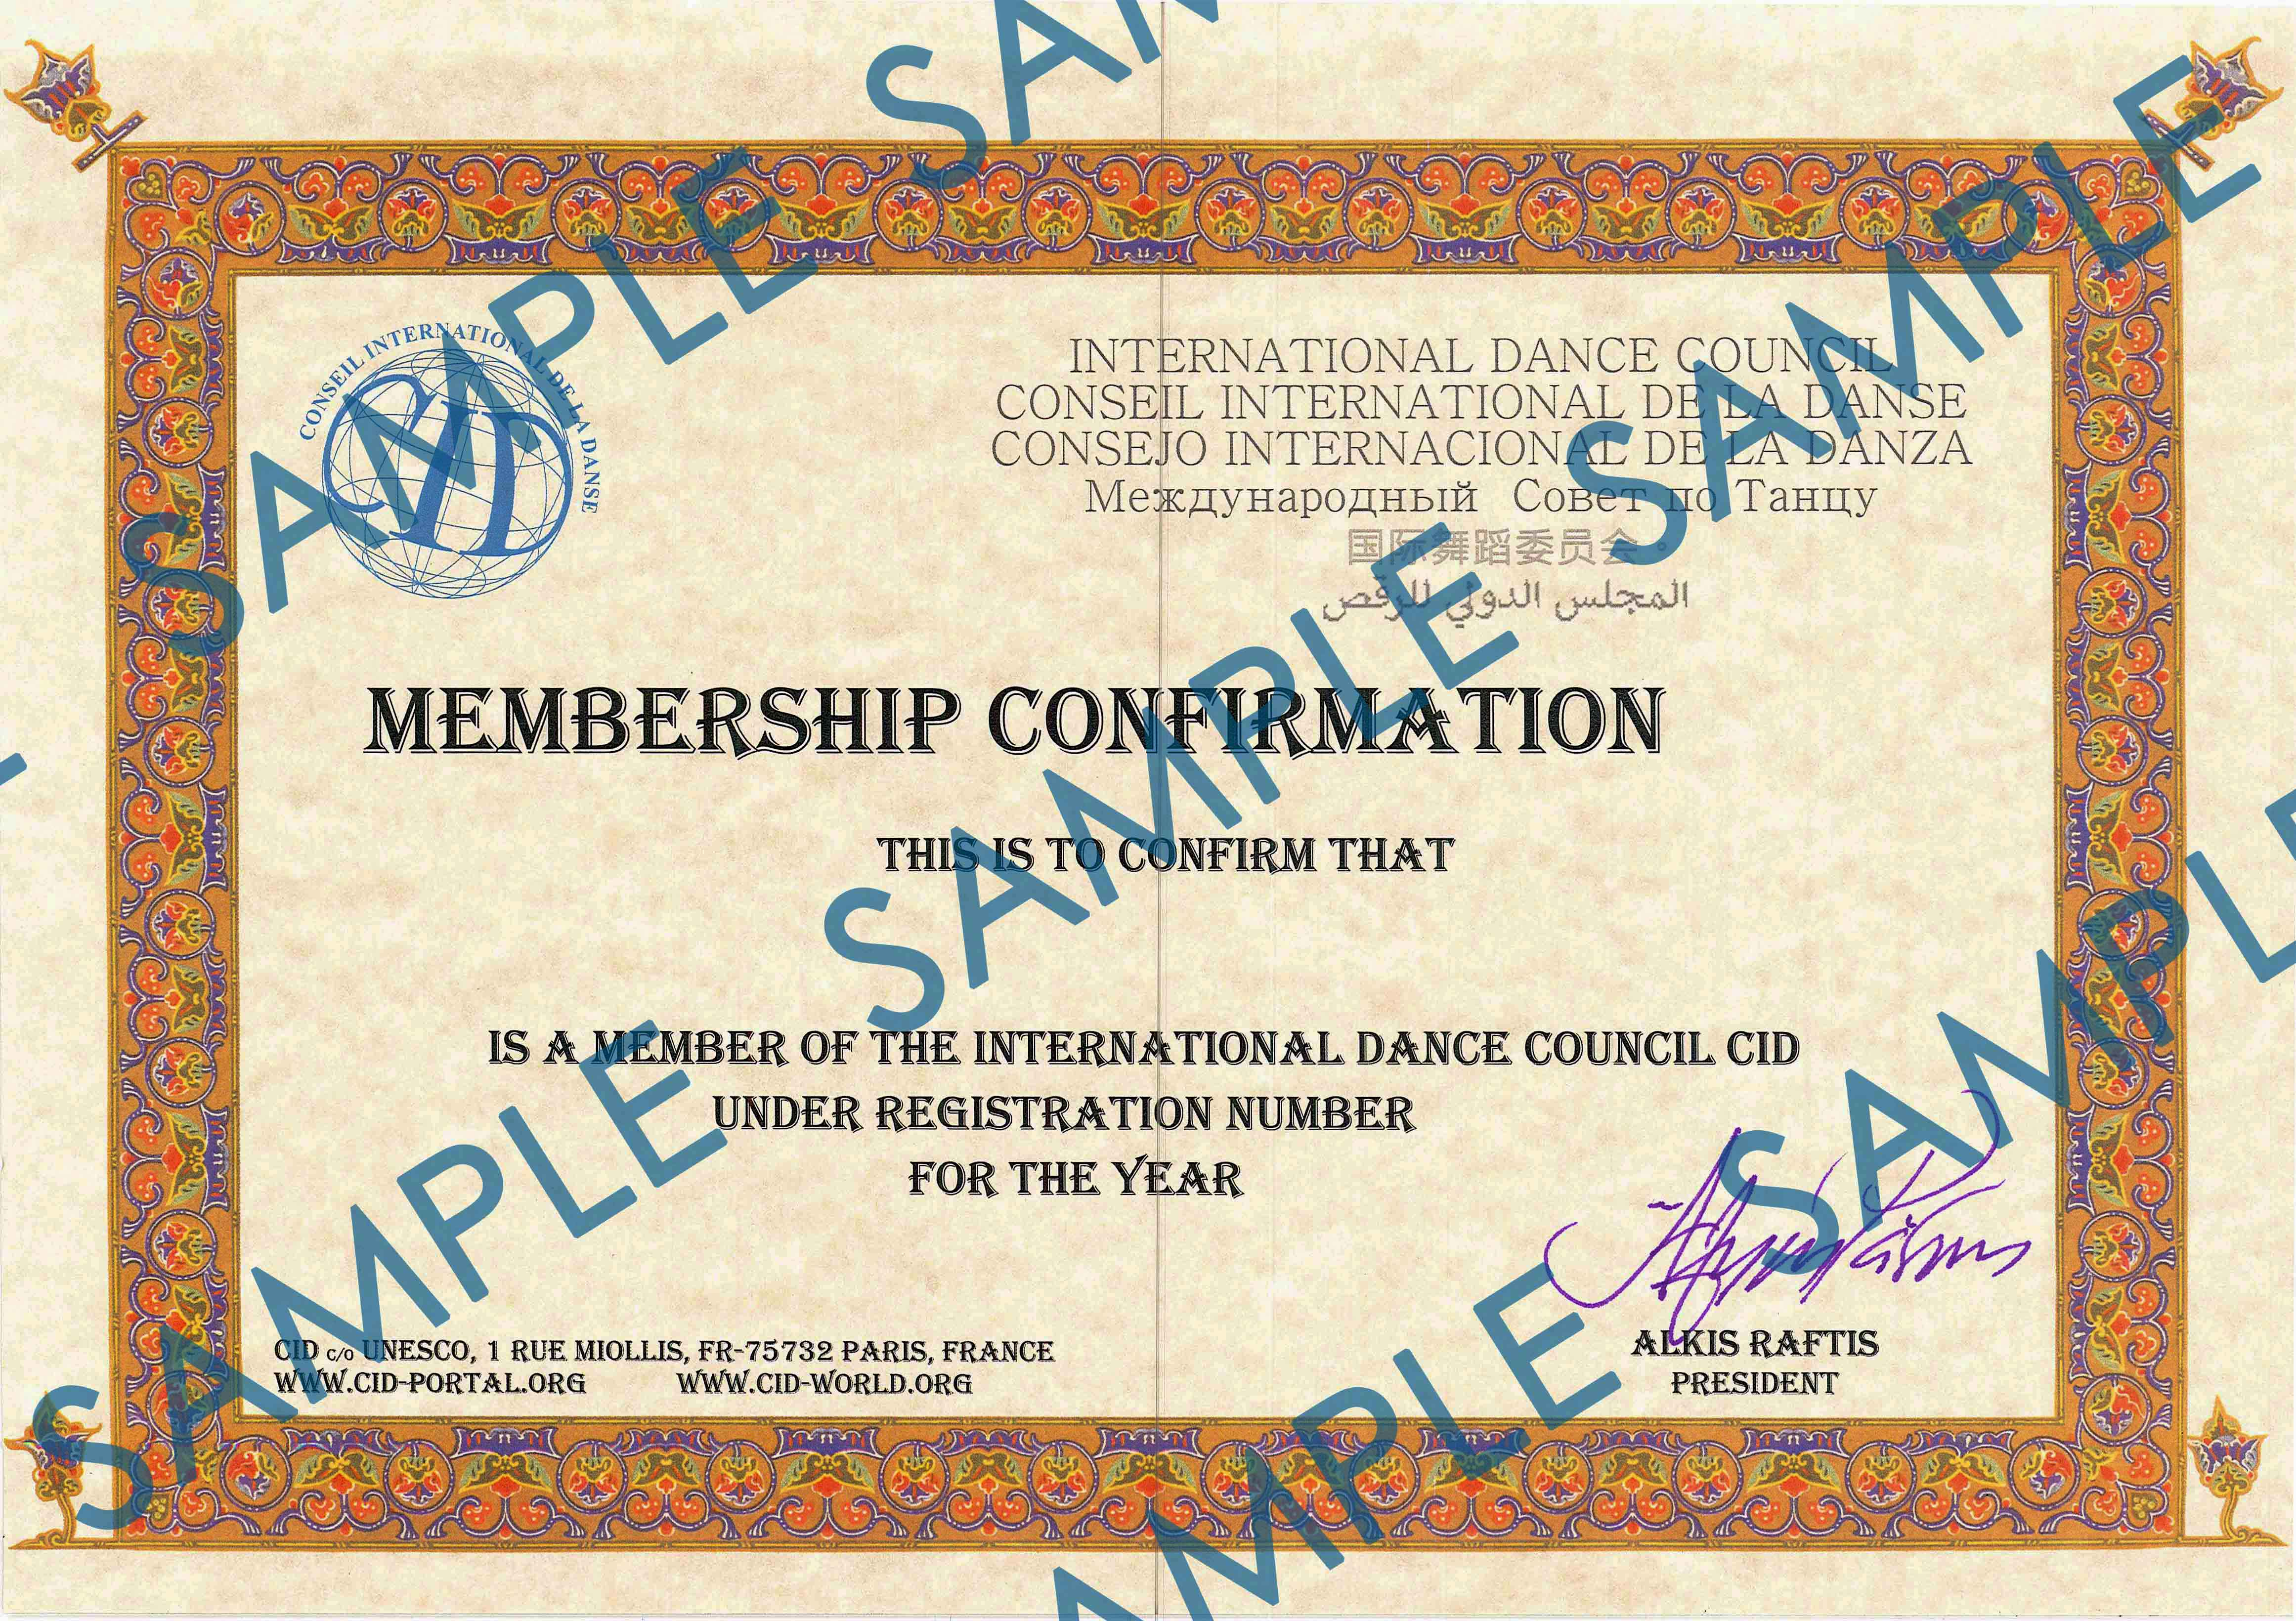 Membership - International Dance Council (CID)